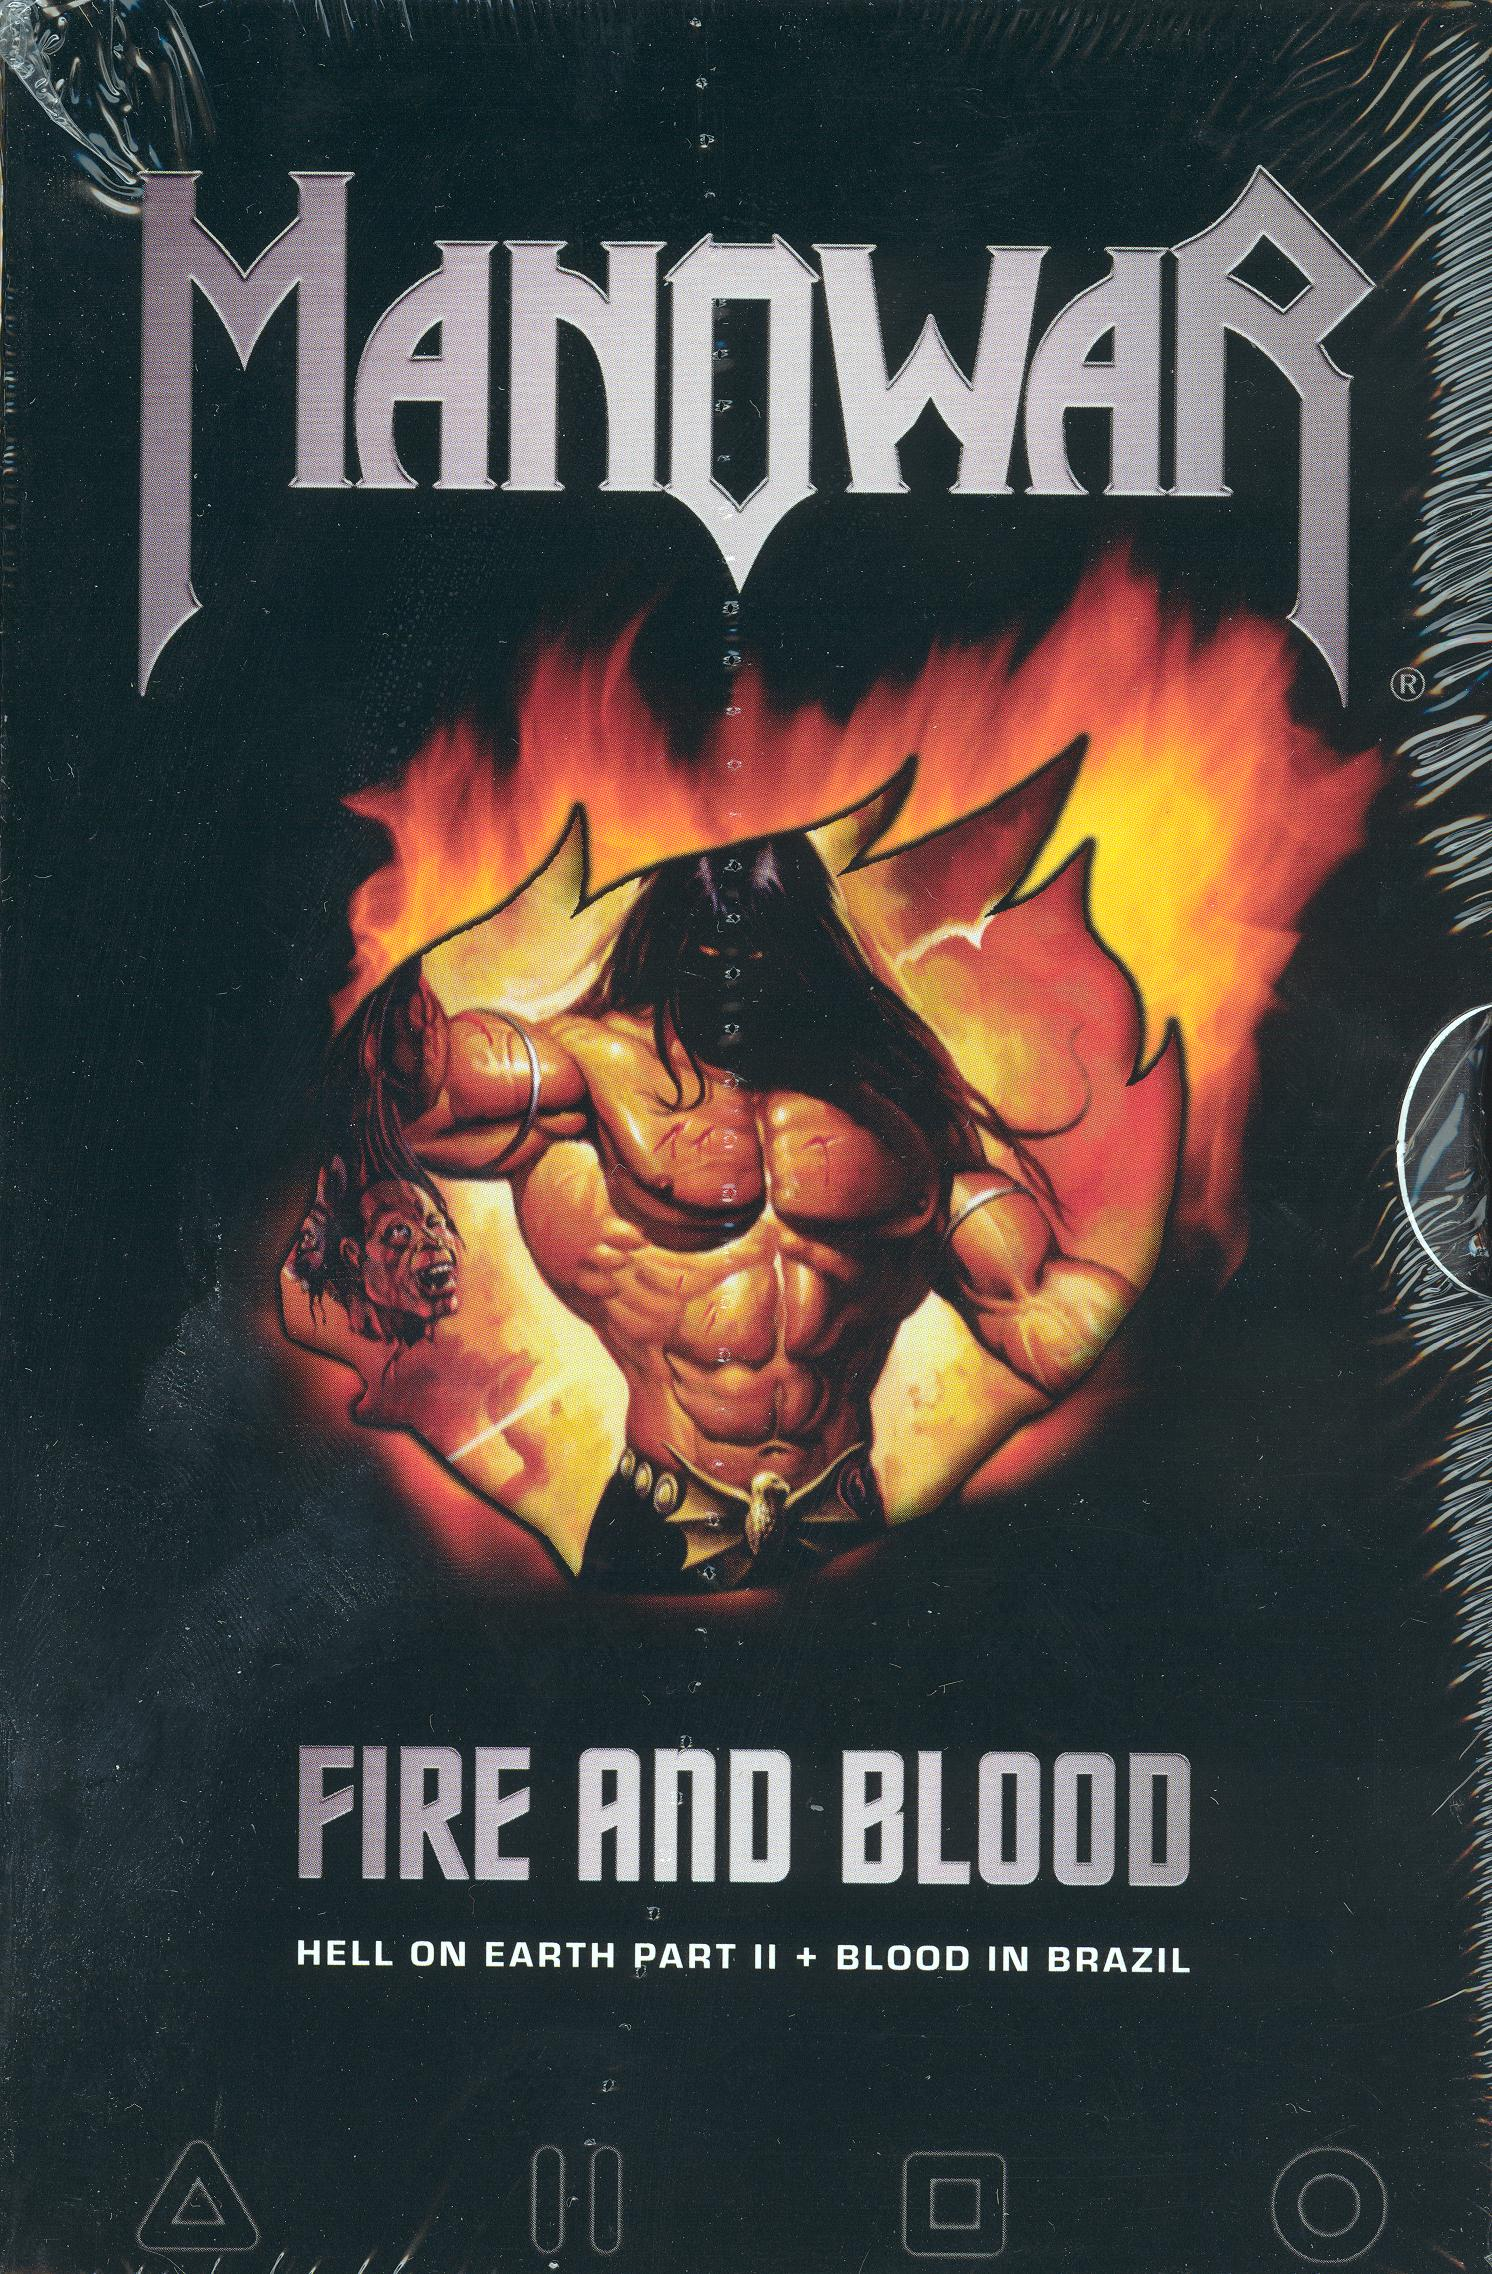 Manowar: Fire and Blood - Hell on Earth Part II/Blood in Brazil